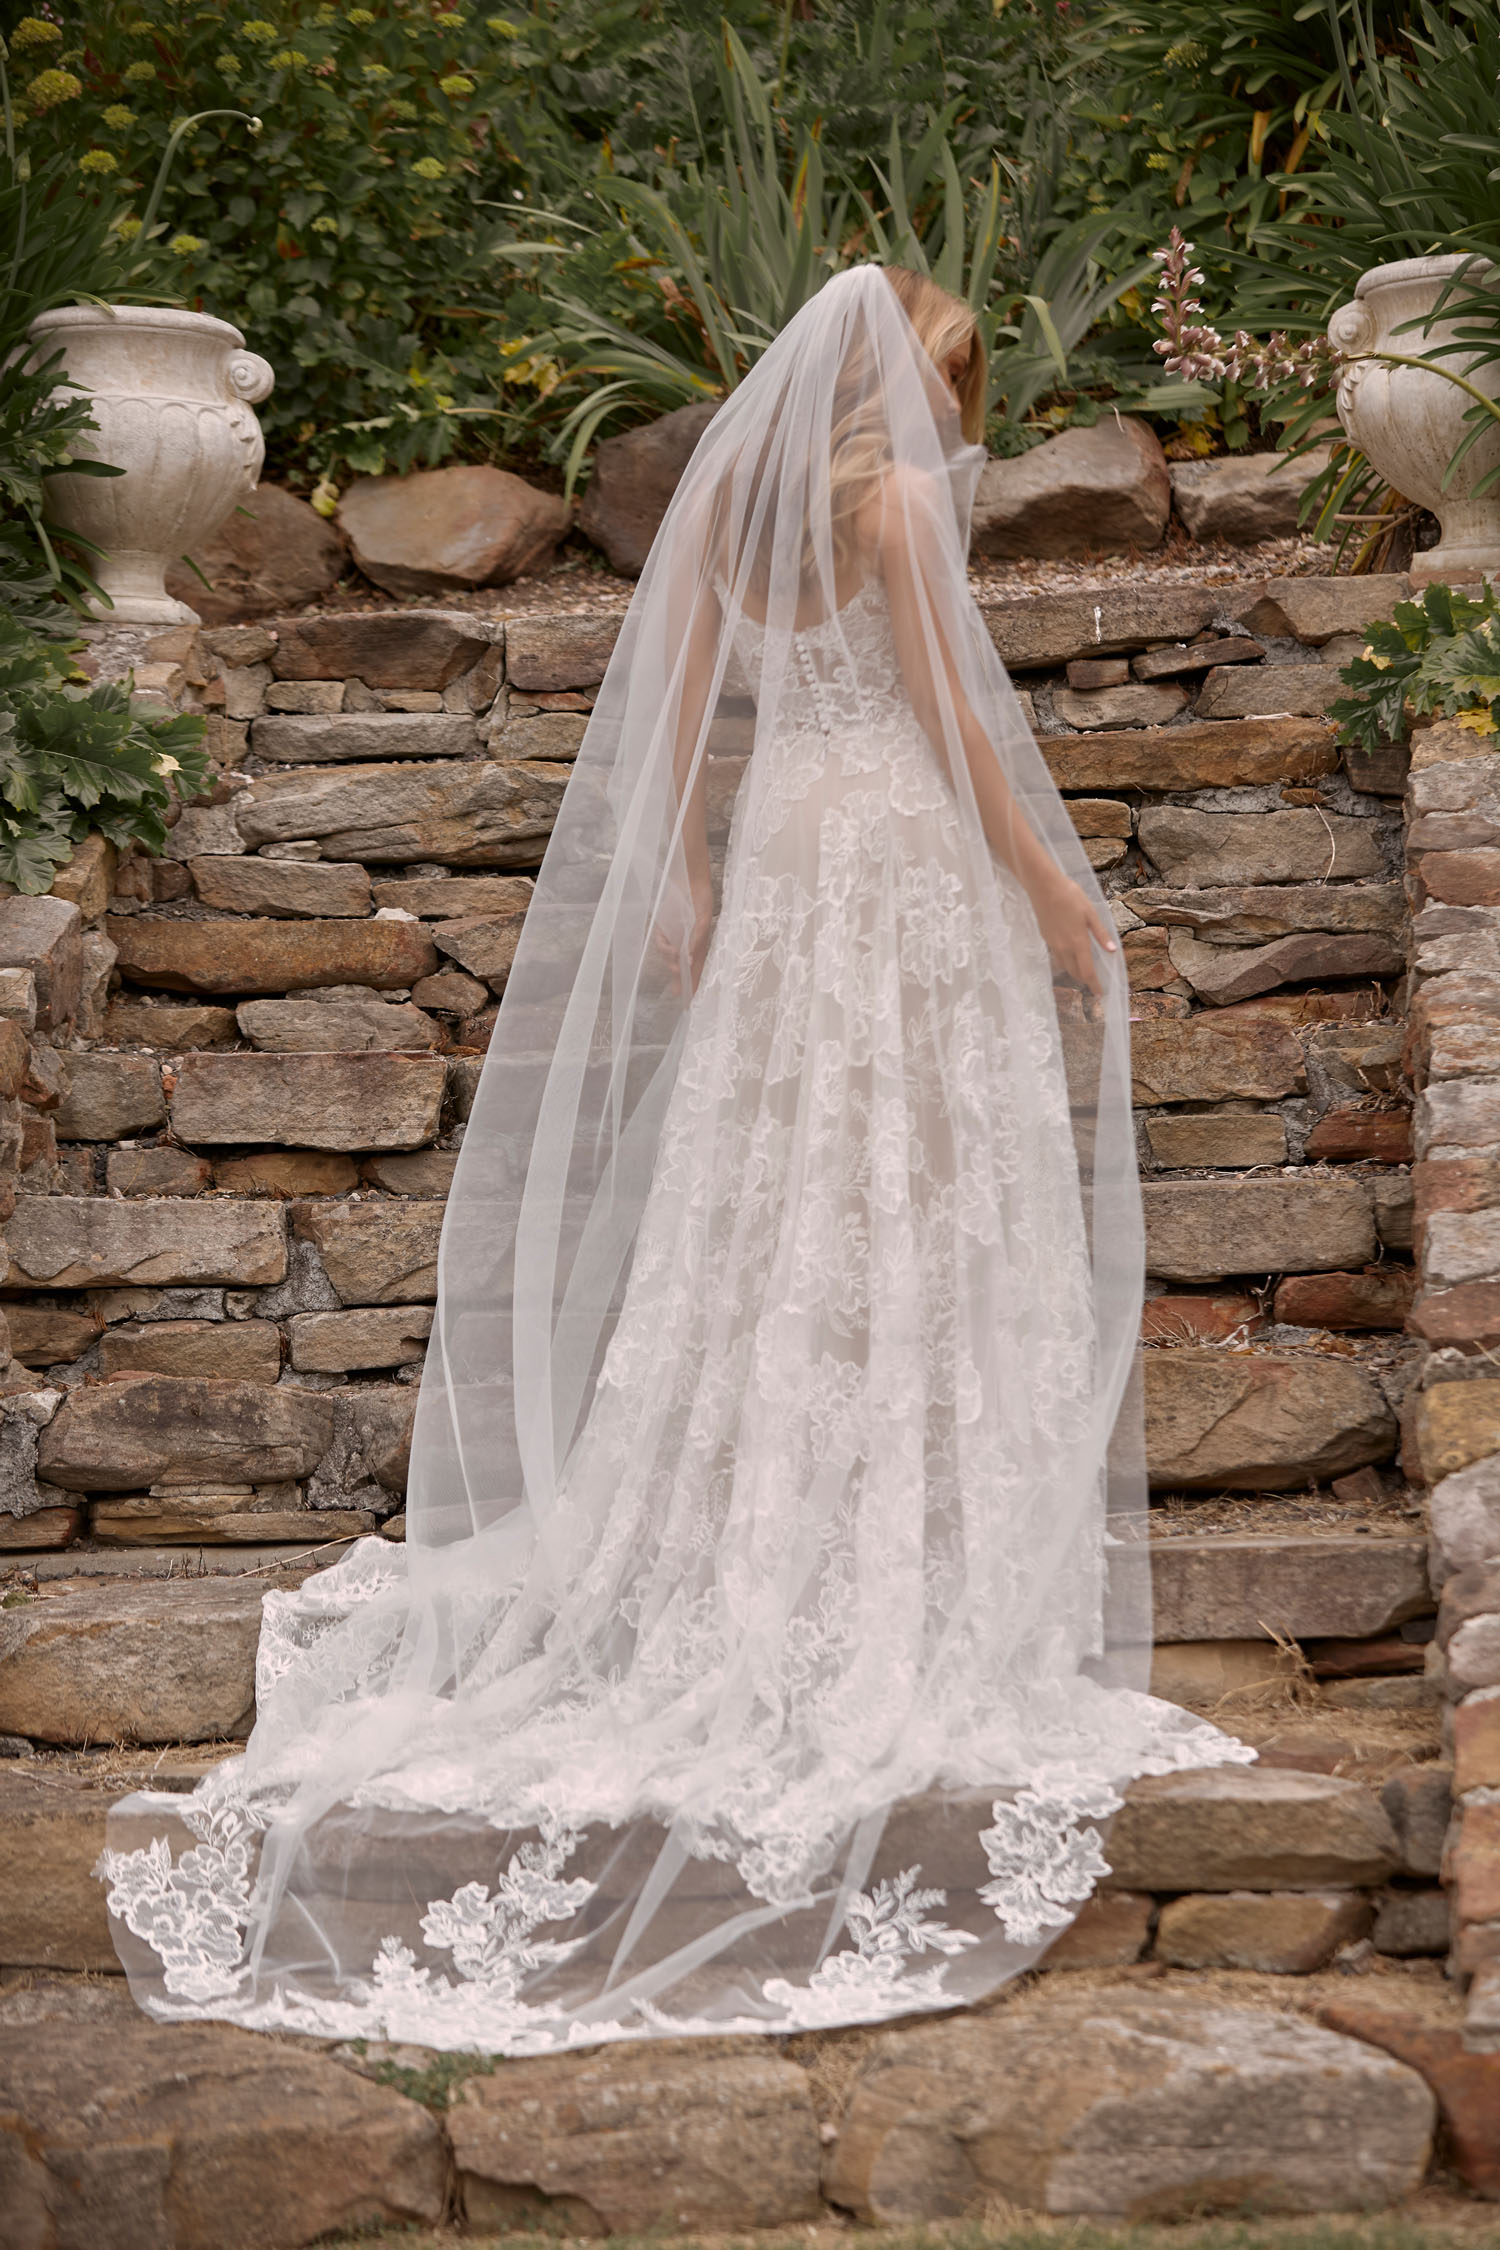 CLEO-ML20026-FULL-LENGTH-A-LINE-FLORAL-LACE-GOWN-SCOOP-NECKLINE-THIN-STRAPS-SCOOP-BACK-ZIPPER-AND-BUTTON-CLOSURE-MATCHING-VEIL-WEDDING-DRESS-MADI-LANE-BRIDAL-9